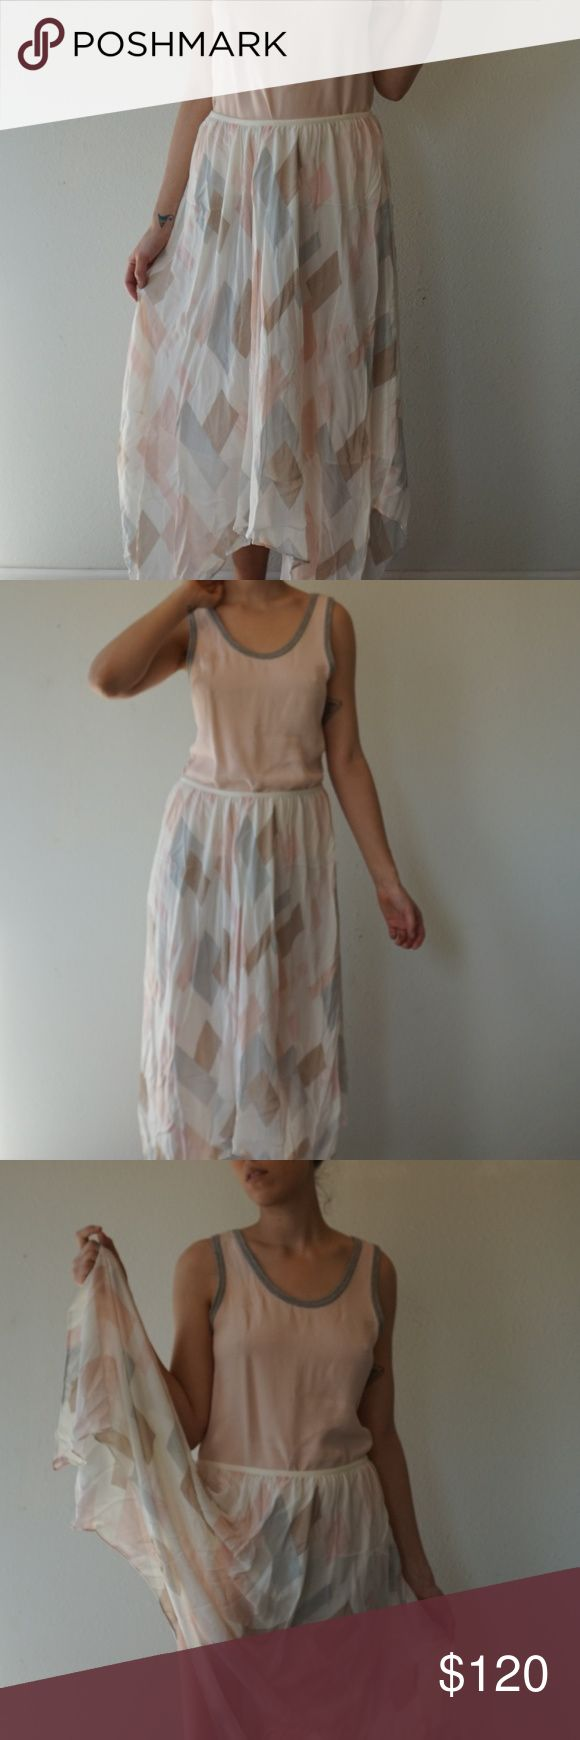 Fun Joie Silk Skirt Beautiful Joie silk skirt in good condition.  Fun pattern for spring!  Just too big for me :(  Stretch waistband.  Zara top (pictured) is also for sale. Joie Skirts Asymmetrical